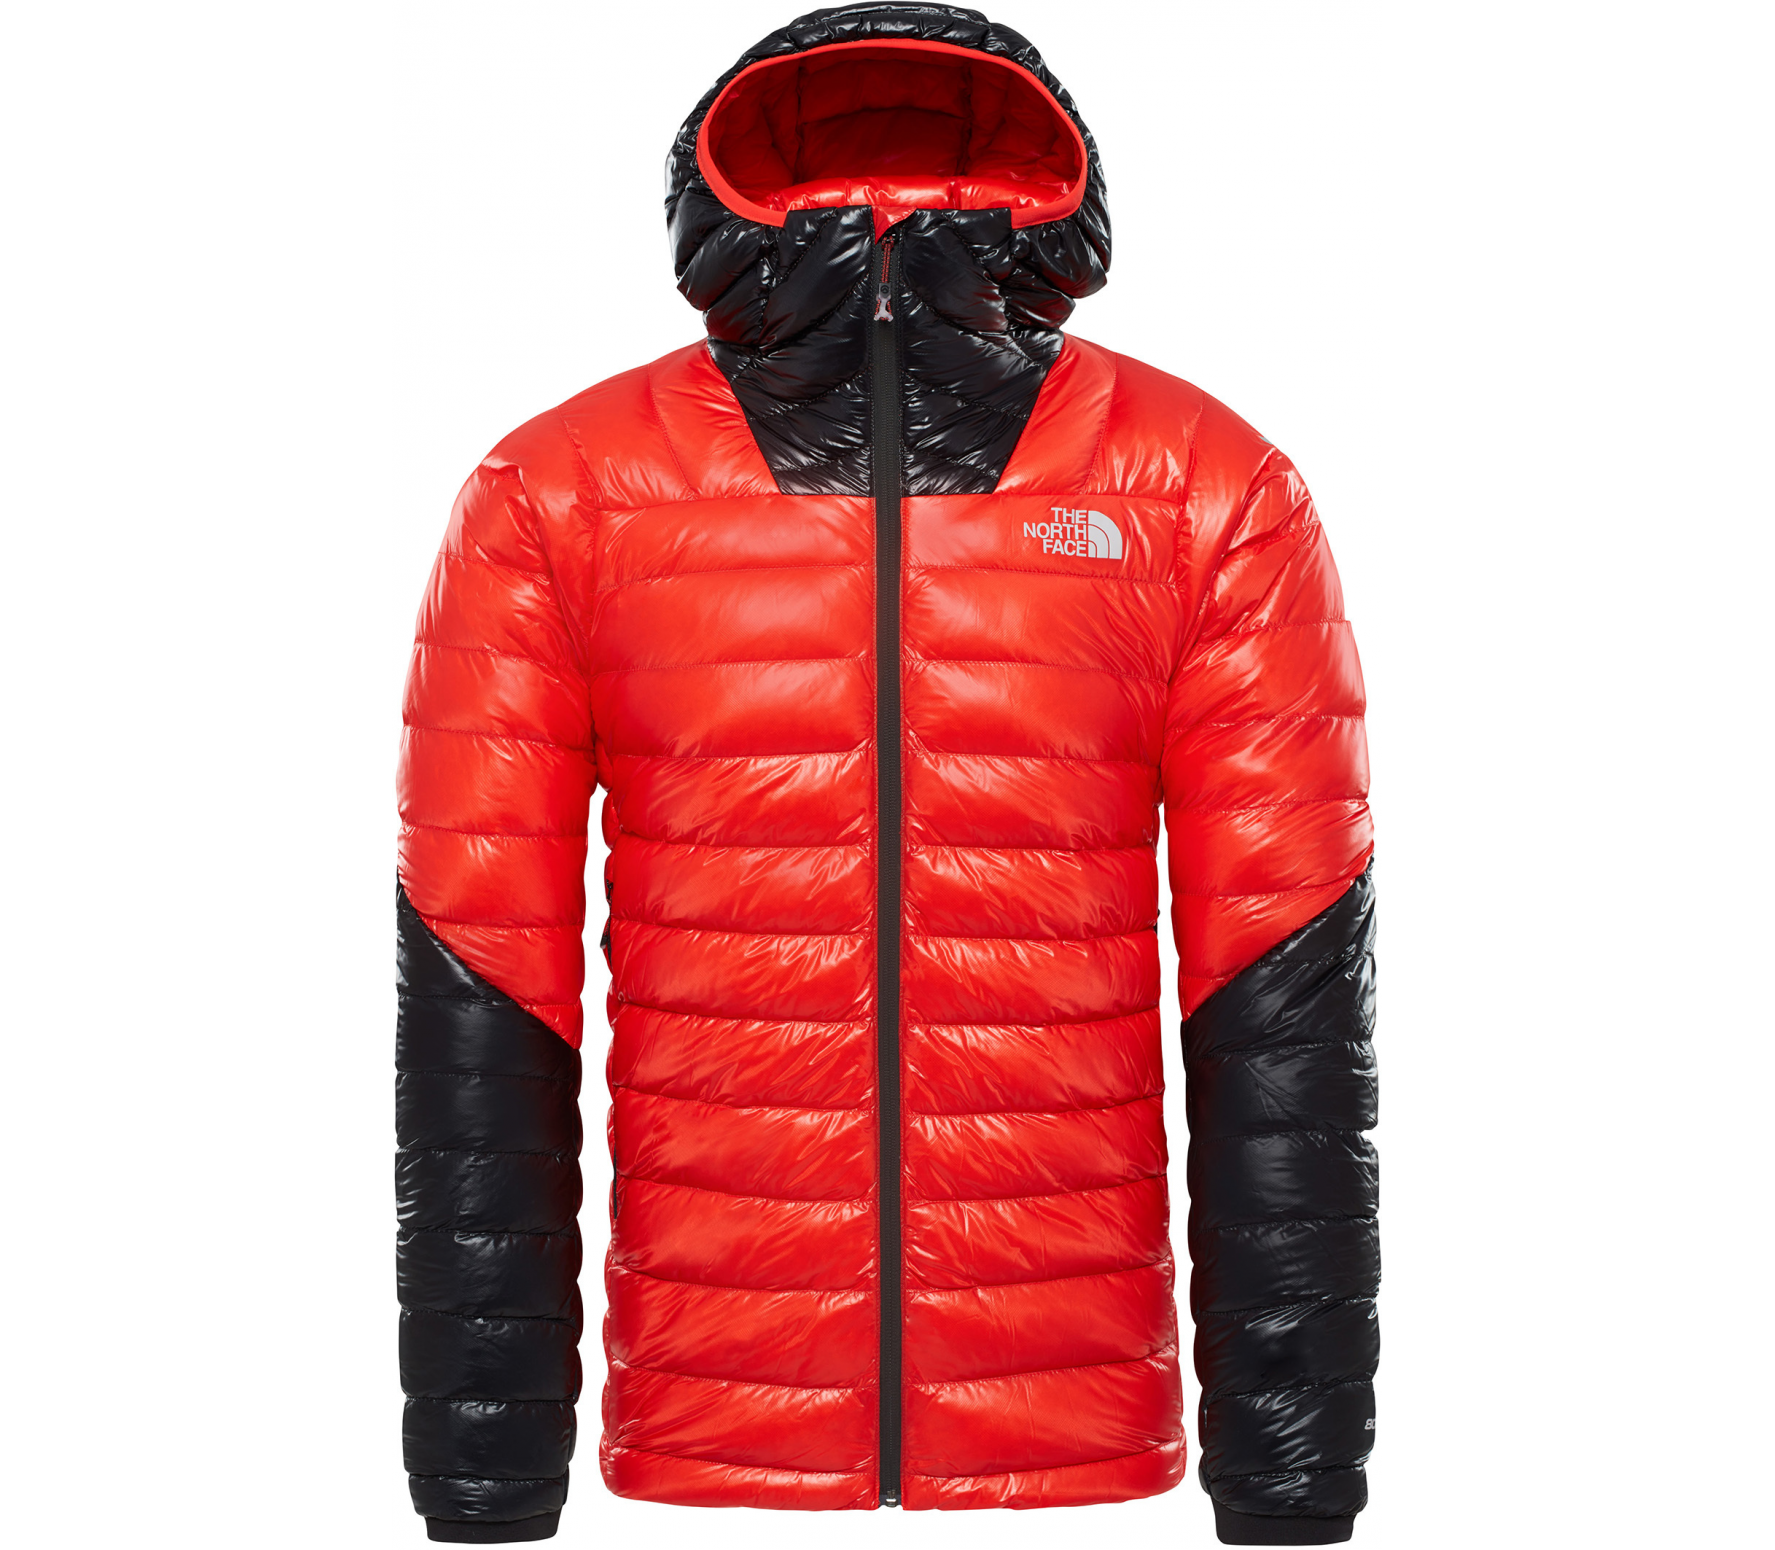 26b9ecdb46b3 The North Face - Summit L3 men s down jacket (red black) - buy it at ...